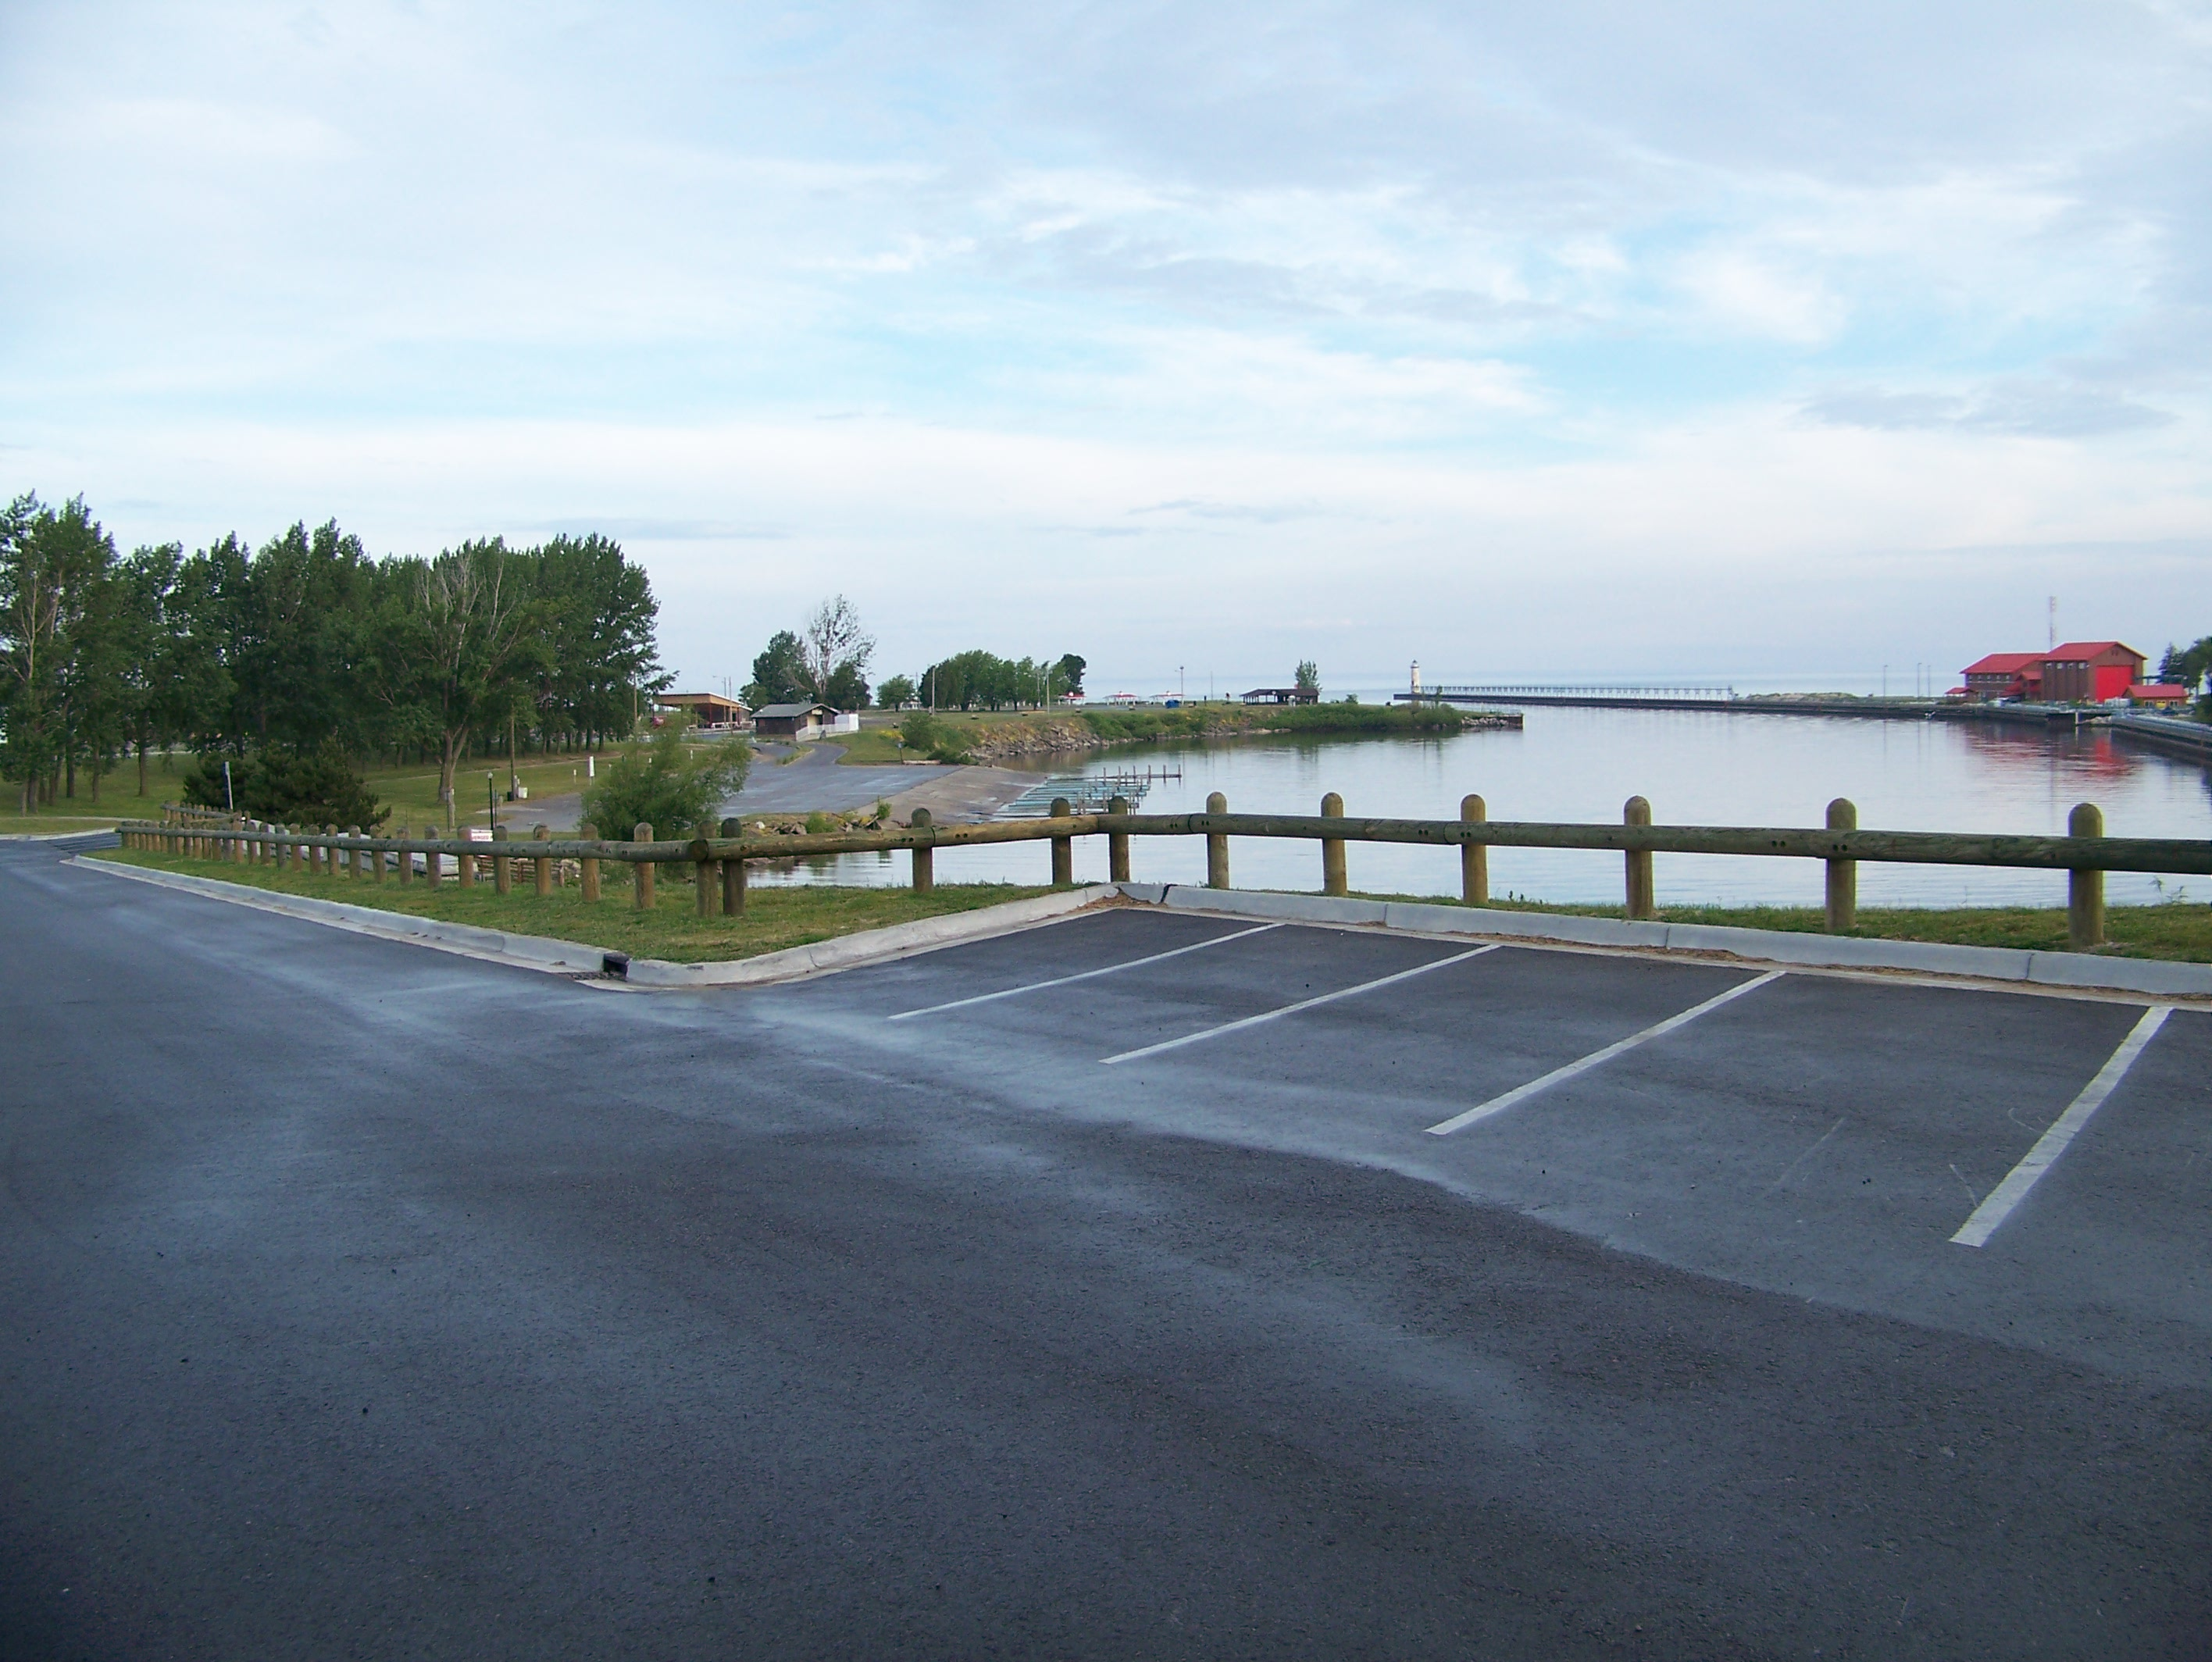 Manistee River Channel outlook located at the entrance to Douglas Park has a view of the boat launch, harbor and the Coast Guard Station